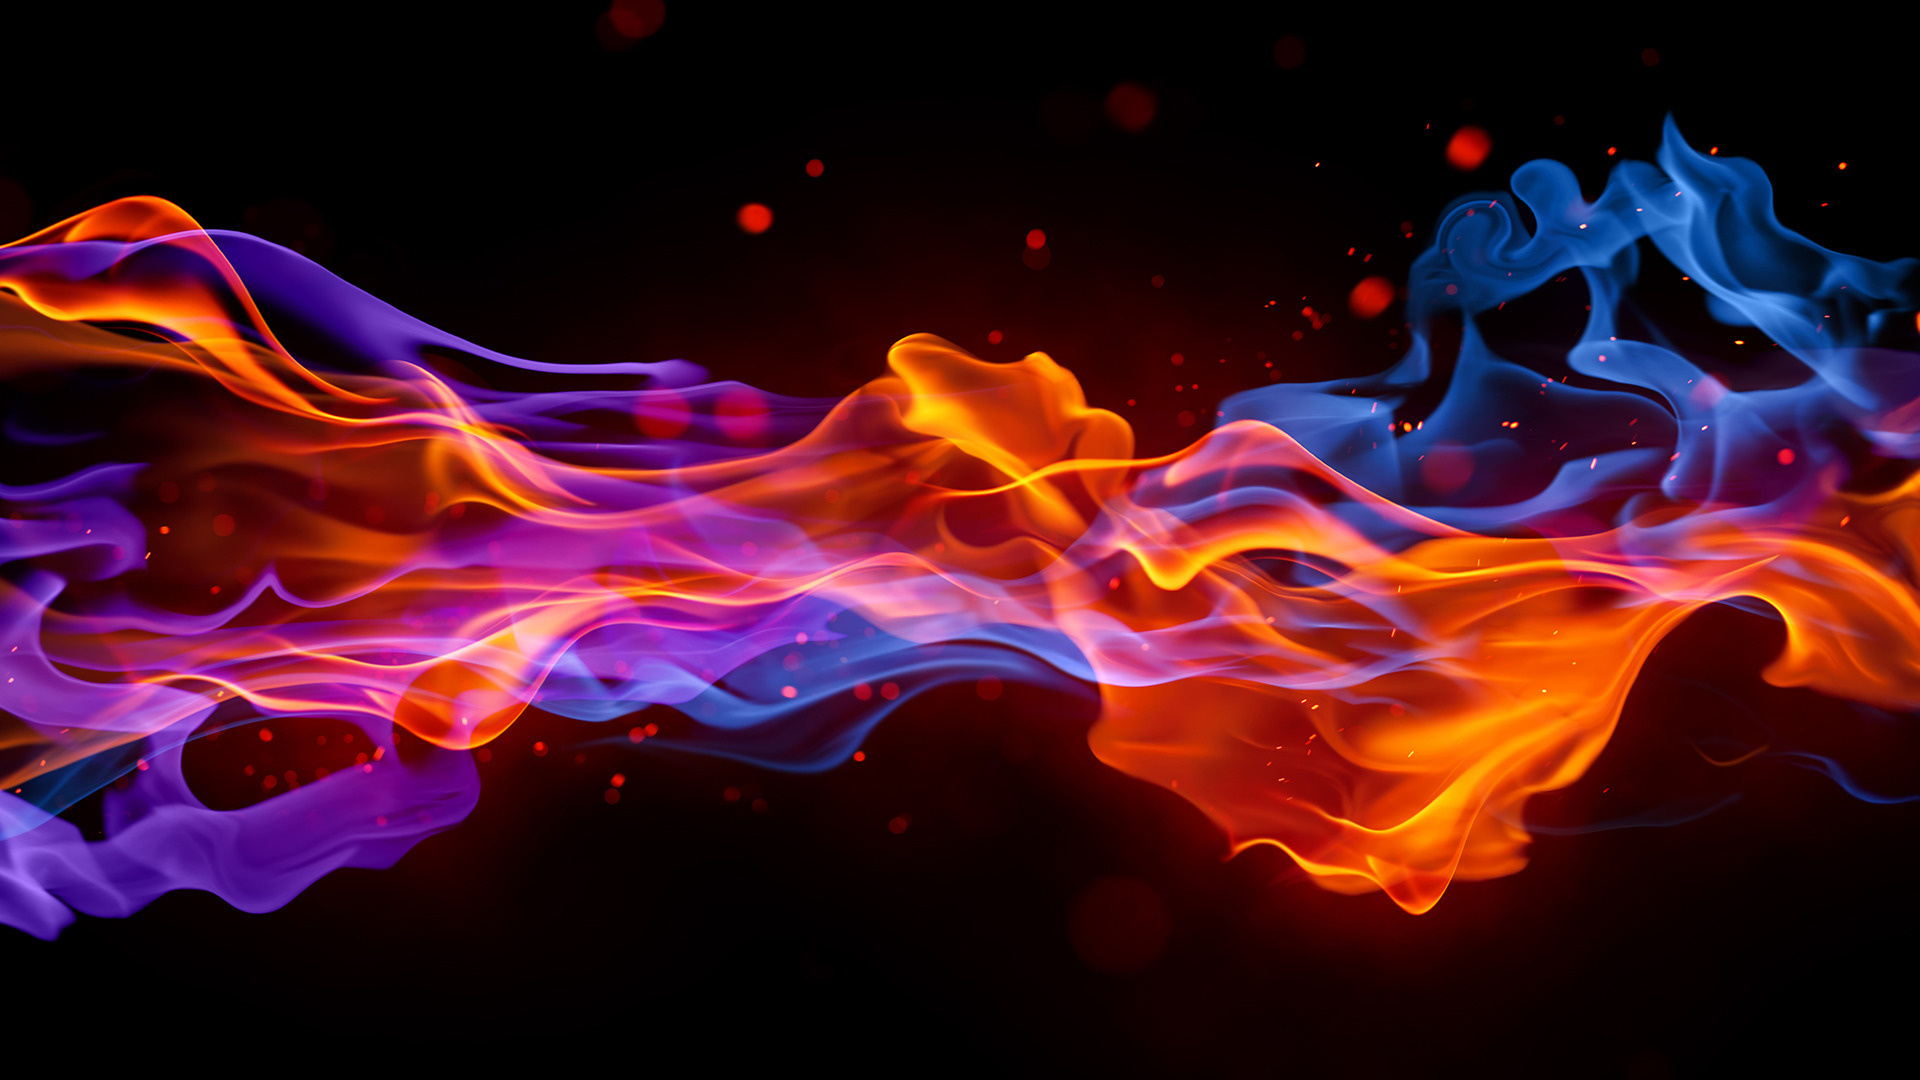 3d cg digital art fire flames colors bright rainbow art artistic 1920x1080